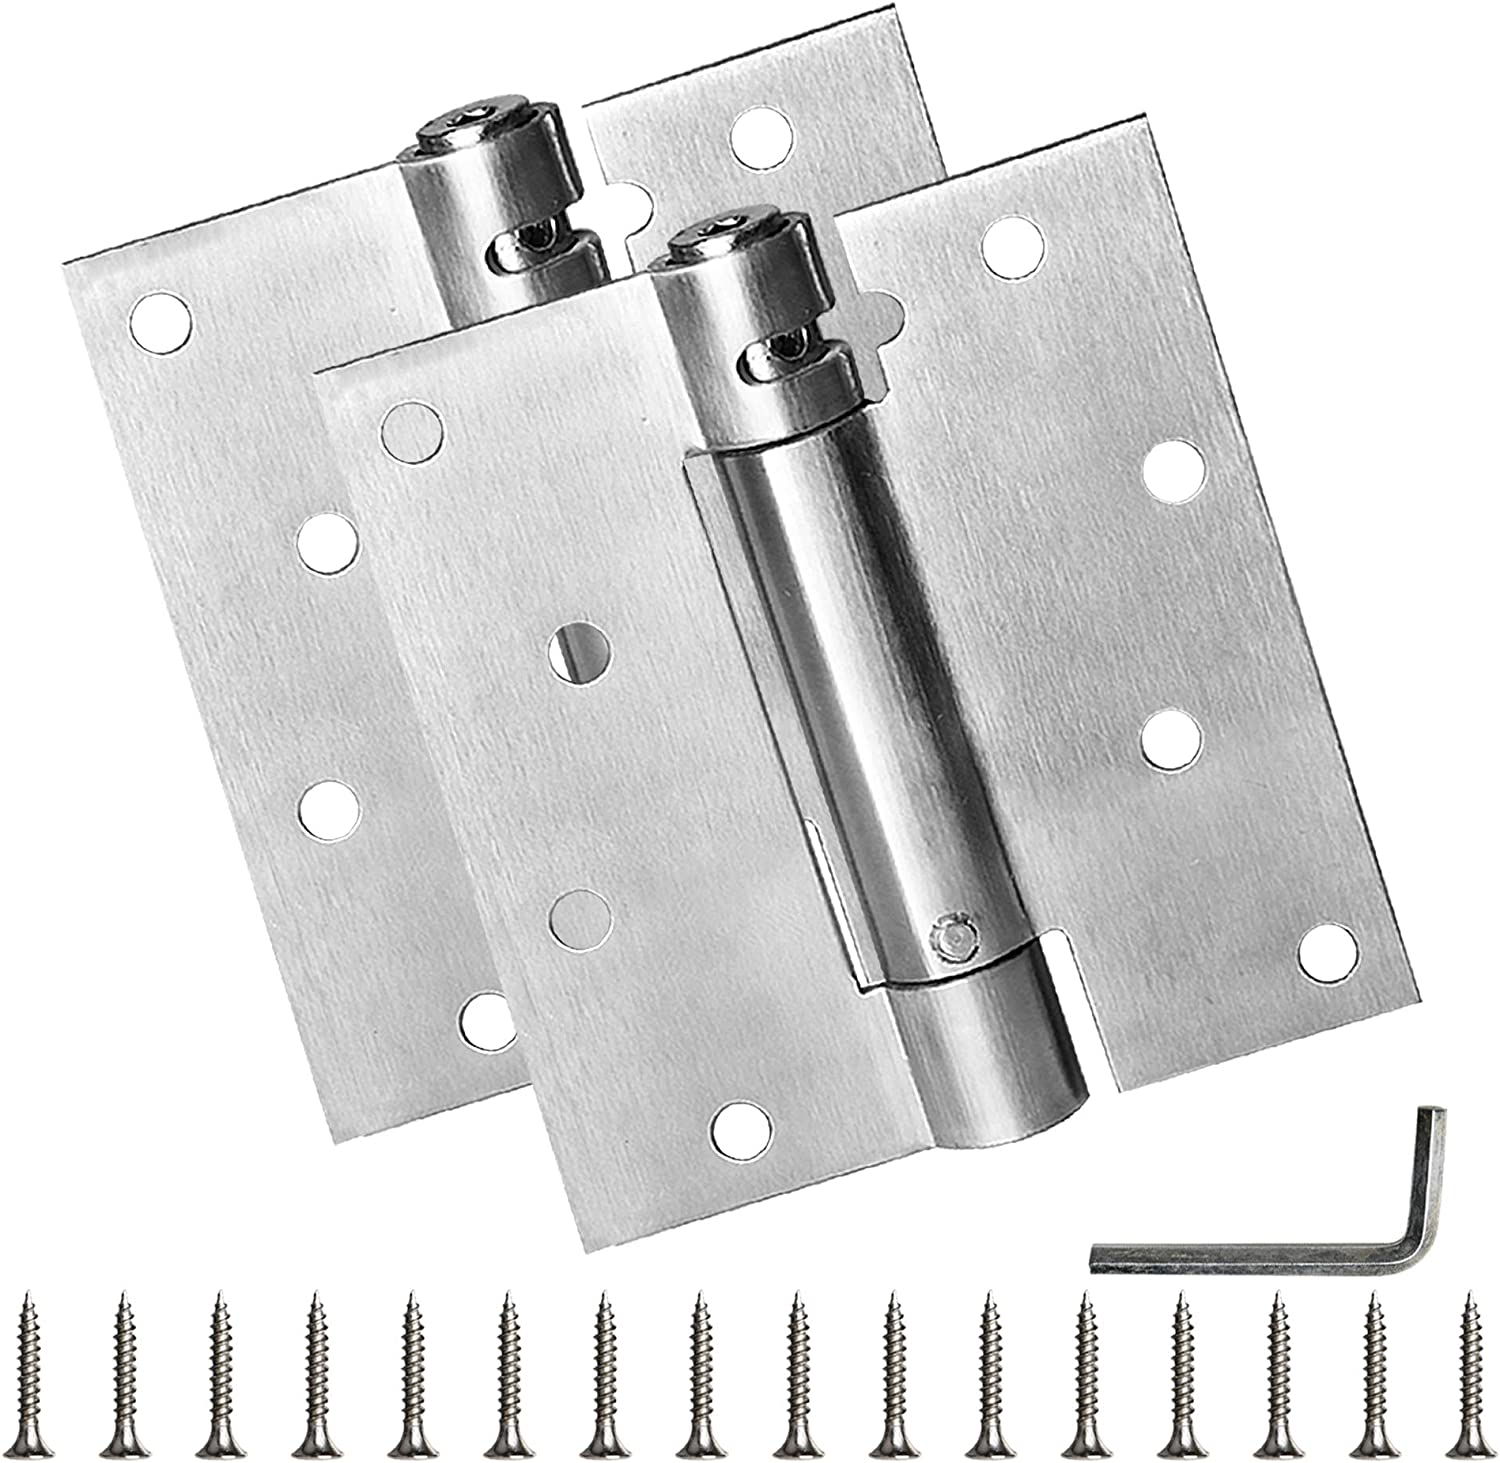 Self Closing Door Hinge, Milkary 2 Pack 4 Inch Heavy Duty Square Stainless Steel Mortise Spring Automatic Closer Hinge Hardware with Mounting Screws Hardware